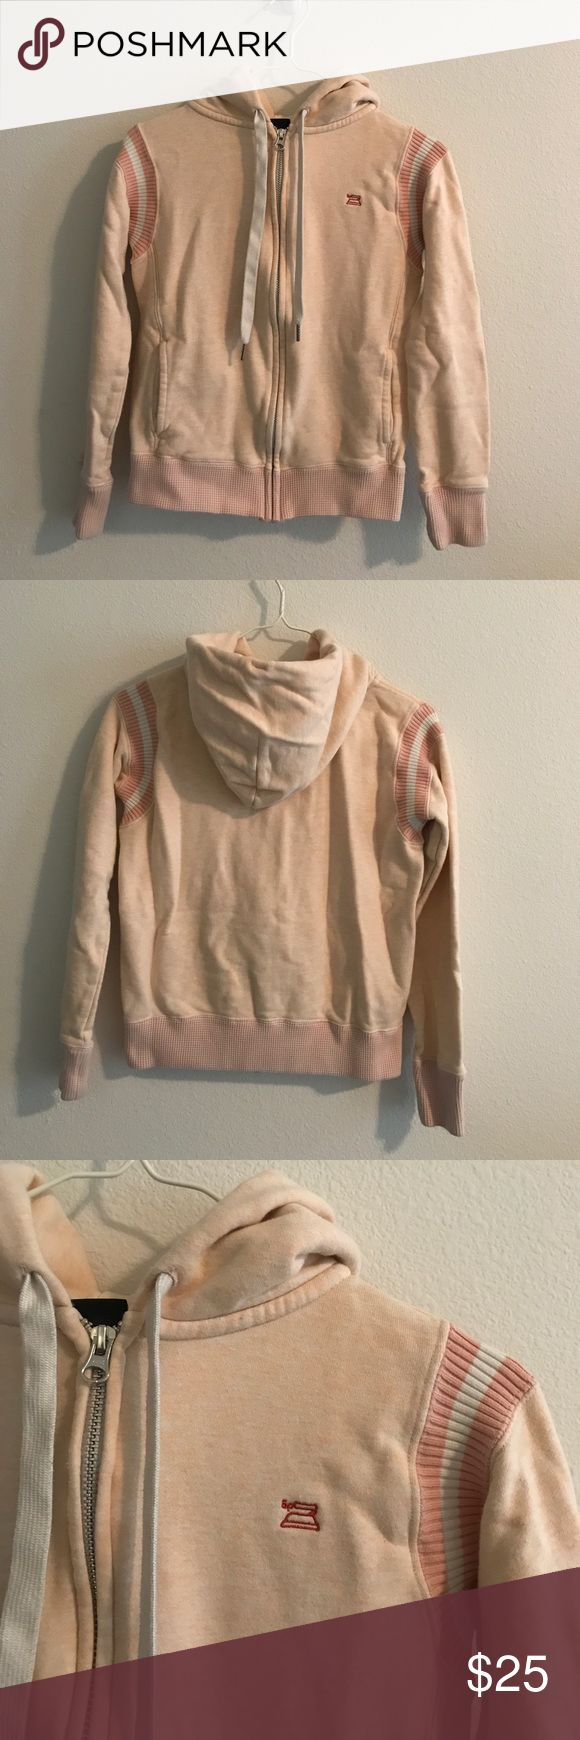 Uniqlo hoodie in coral Uniqlo x Good Morning Beautiful People Collaboration hoodie in beautiful light coral color. Body is 100% cotton, rib is 98% cotton and 2% spandex. Material has slight stretch. In excellent condition. Uniqlo Jackets & Coats